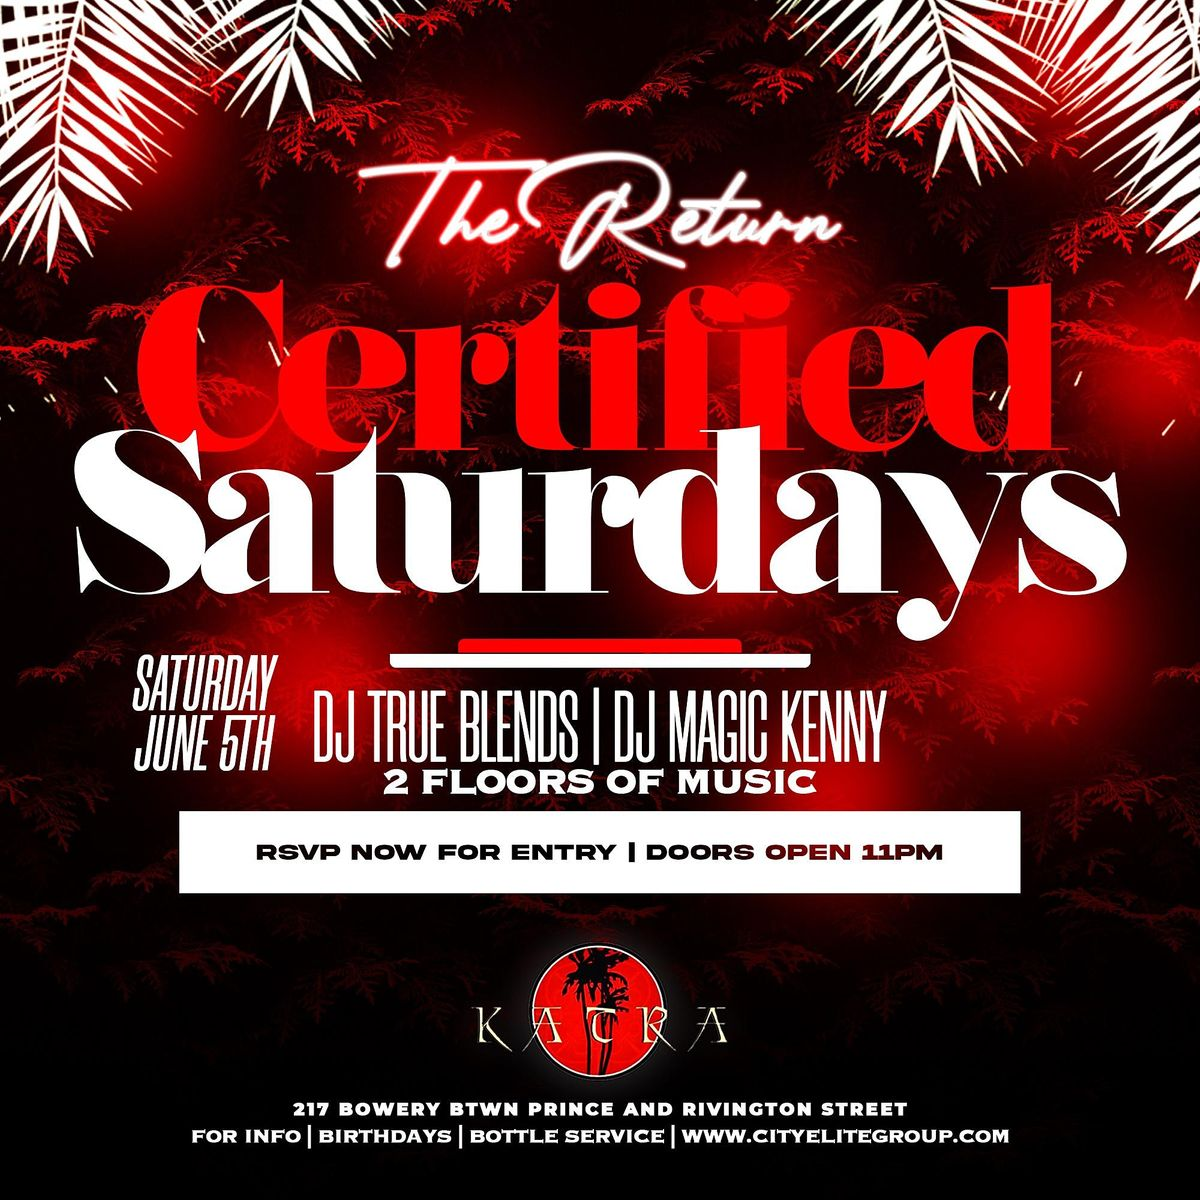 Nyc #1 Certified Saturdays at Katra nyc | Event in New York | AllEvents.in